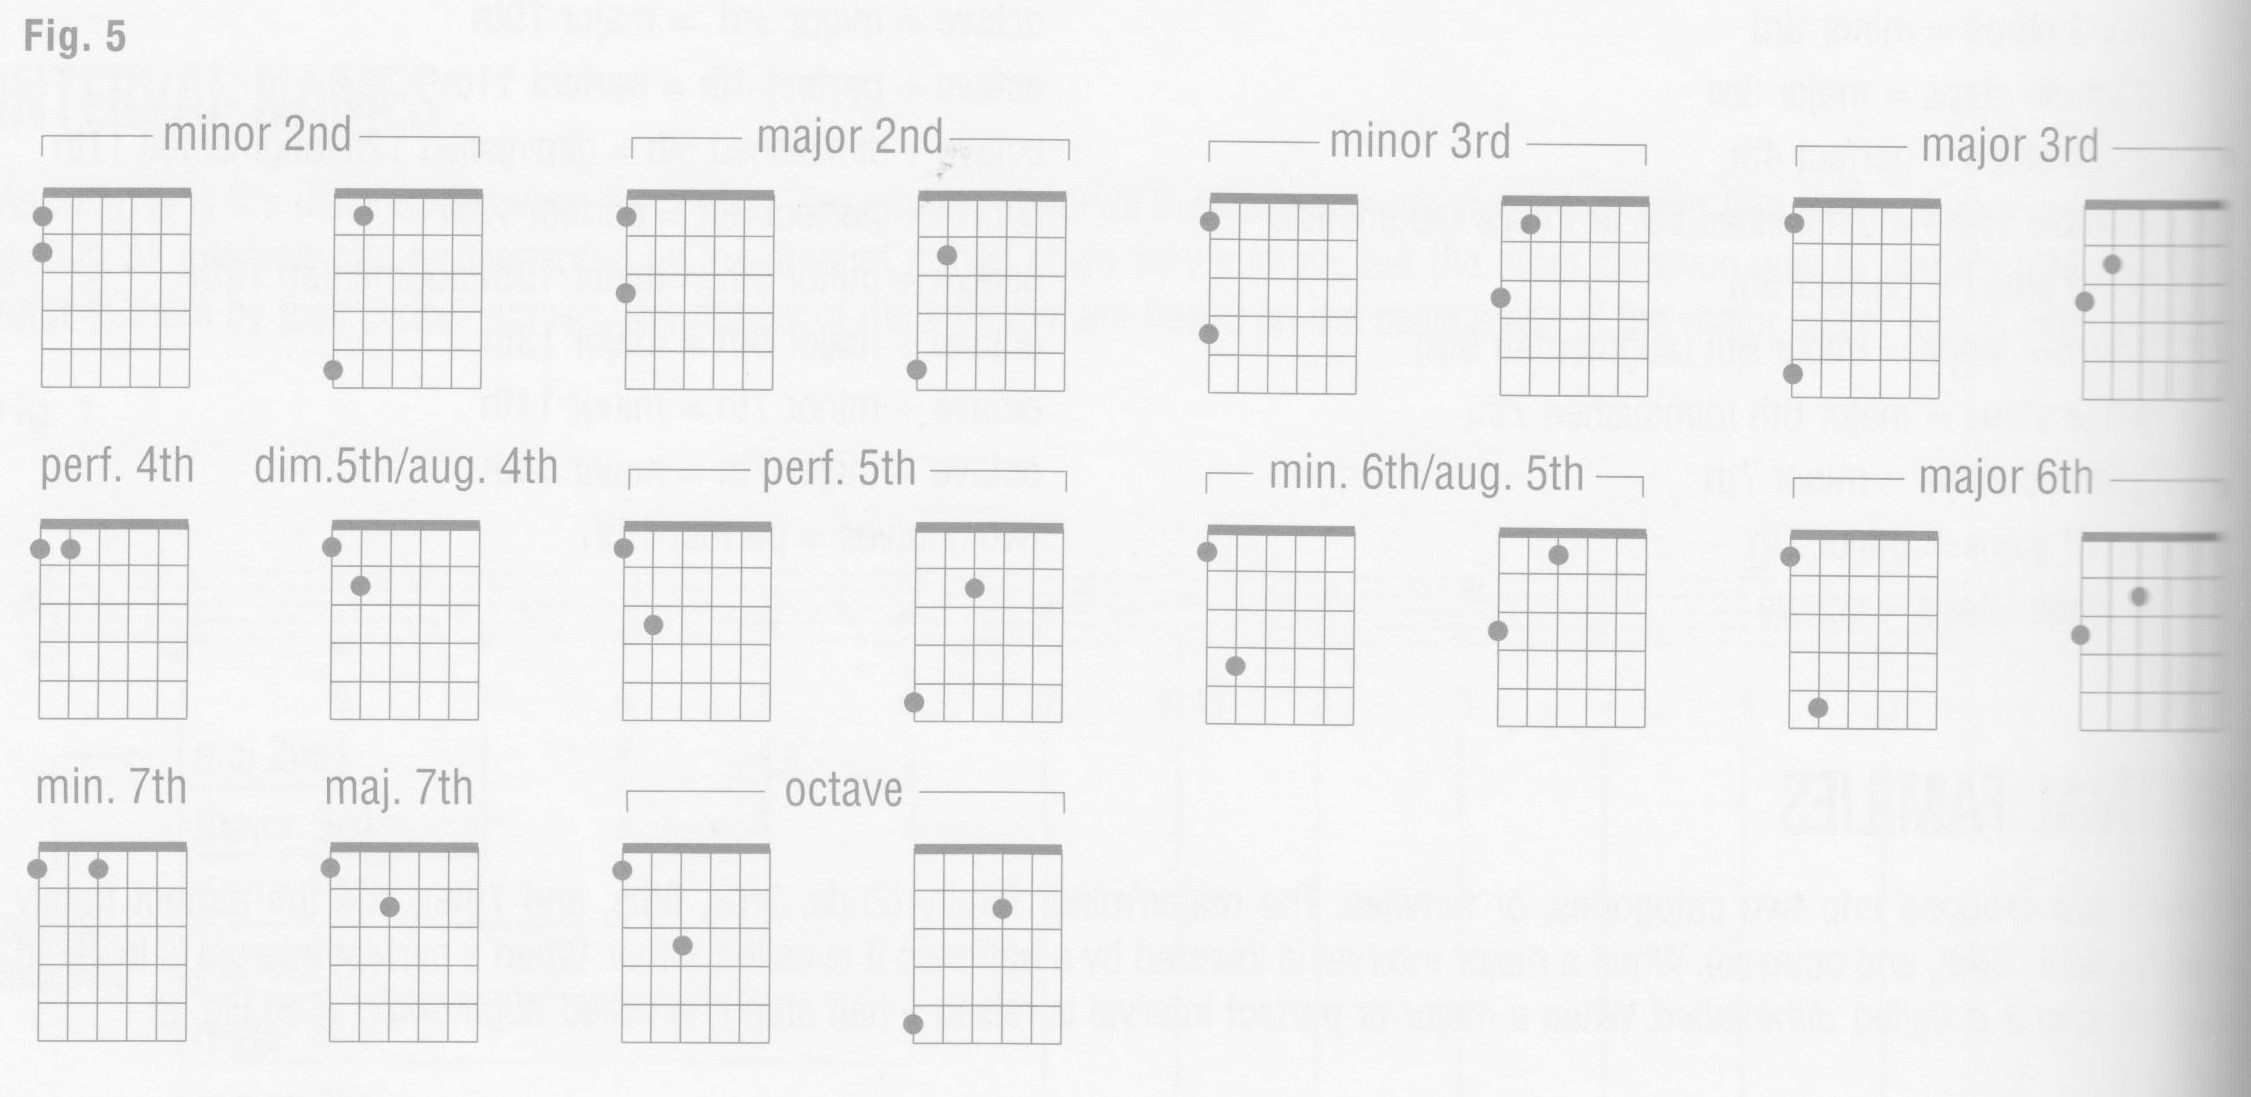 p26-figure-5-interval-shapes-top-strings